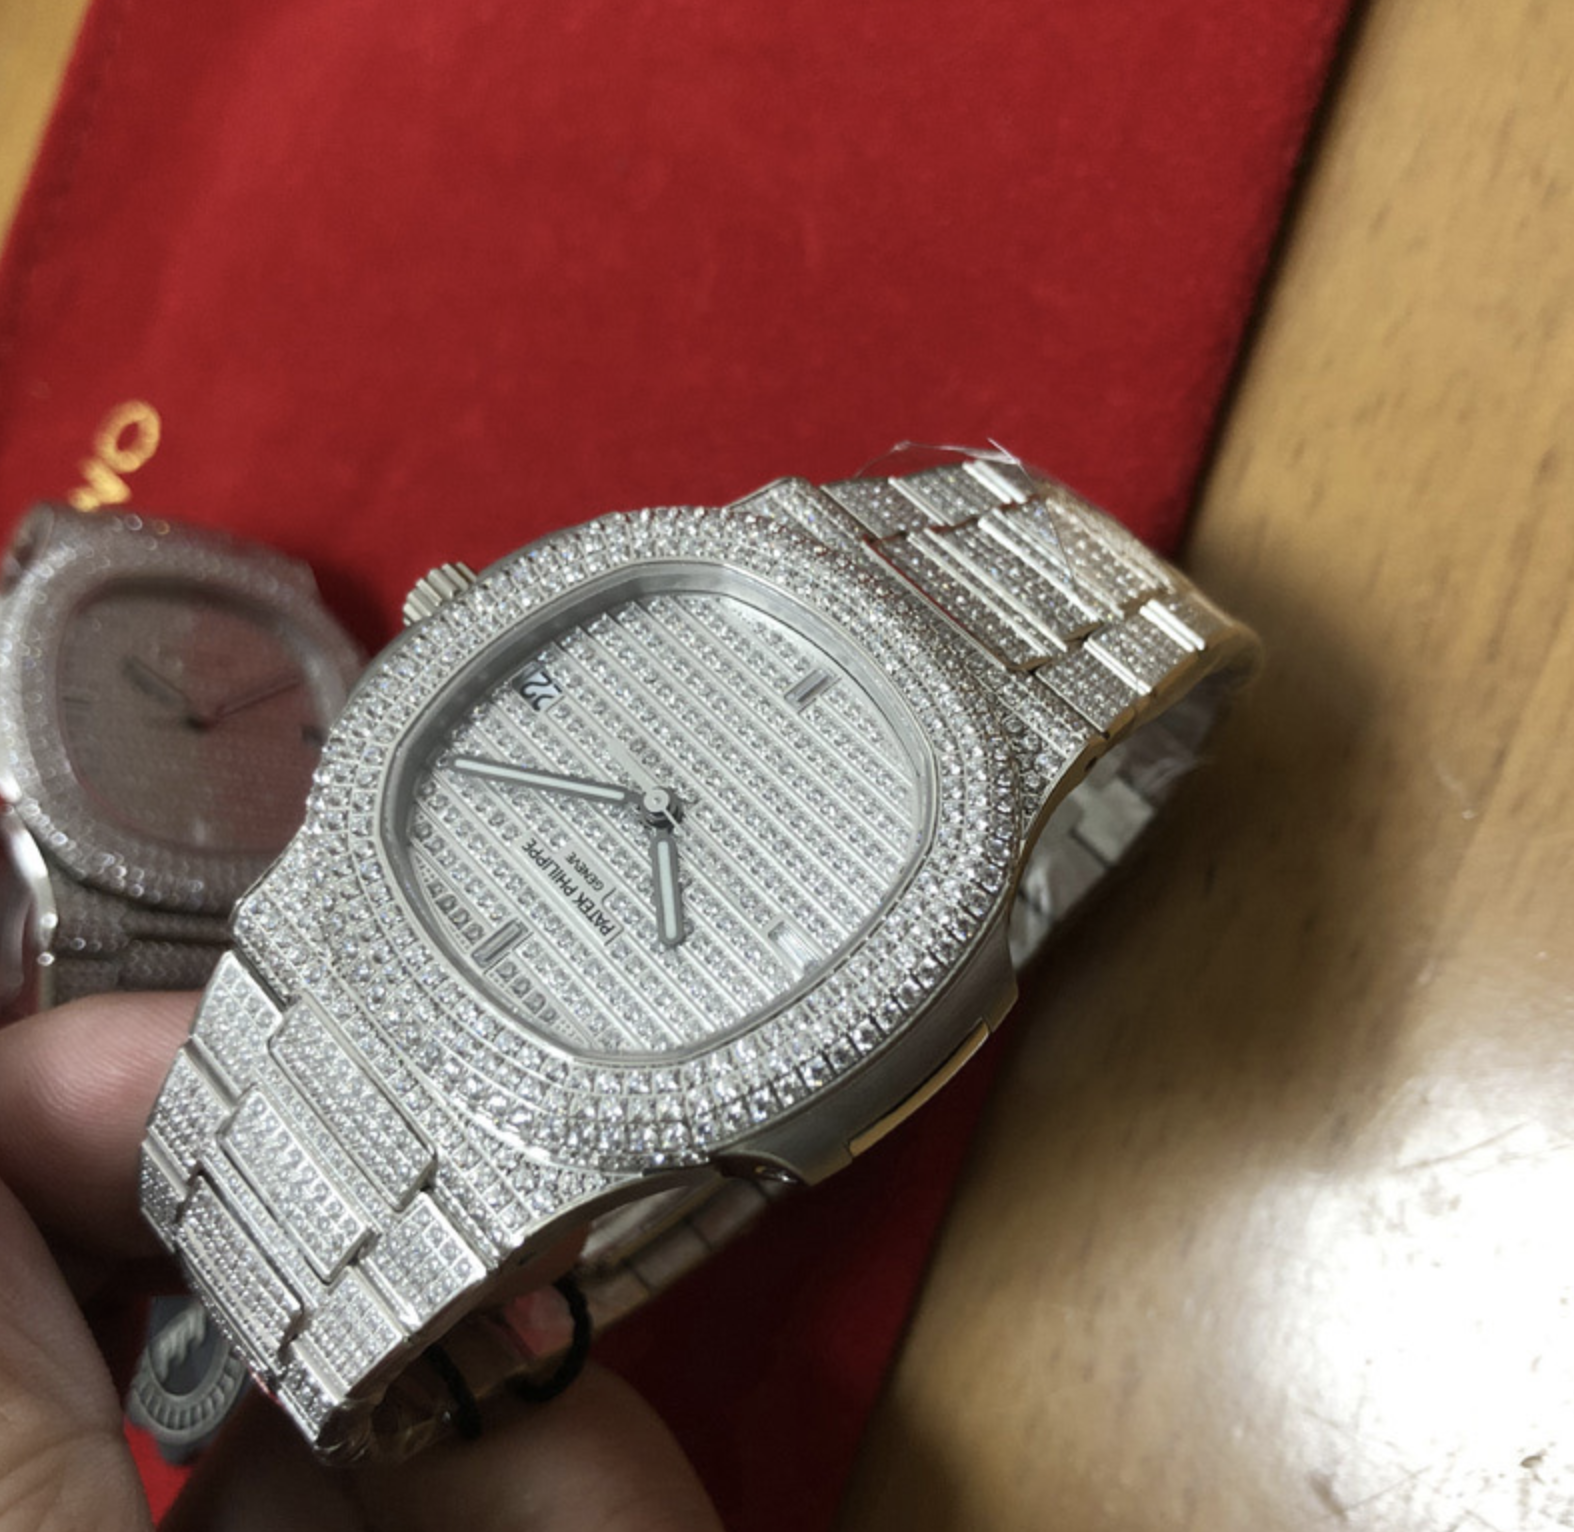 Patek philippe replica nautilus 5719/1G full diamond pave diamond 324SC clone movement